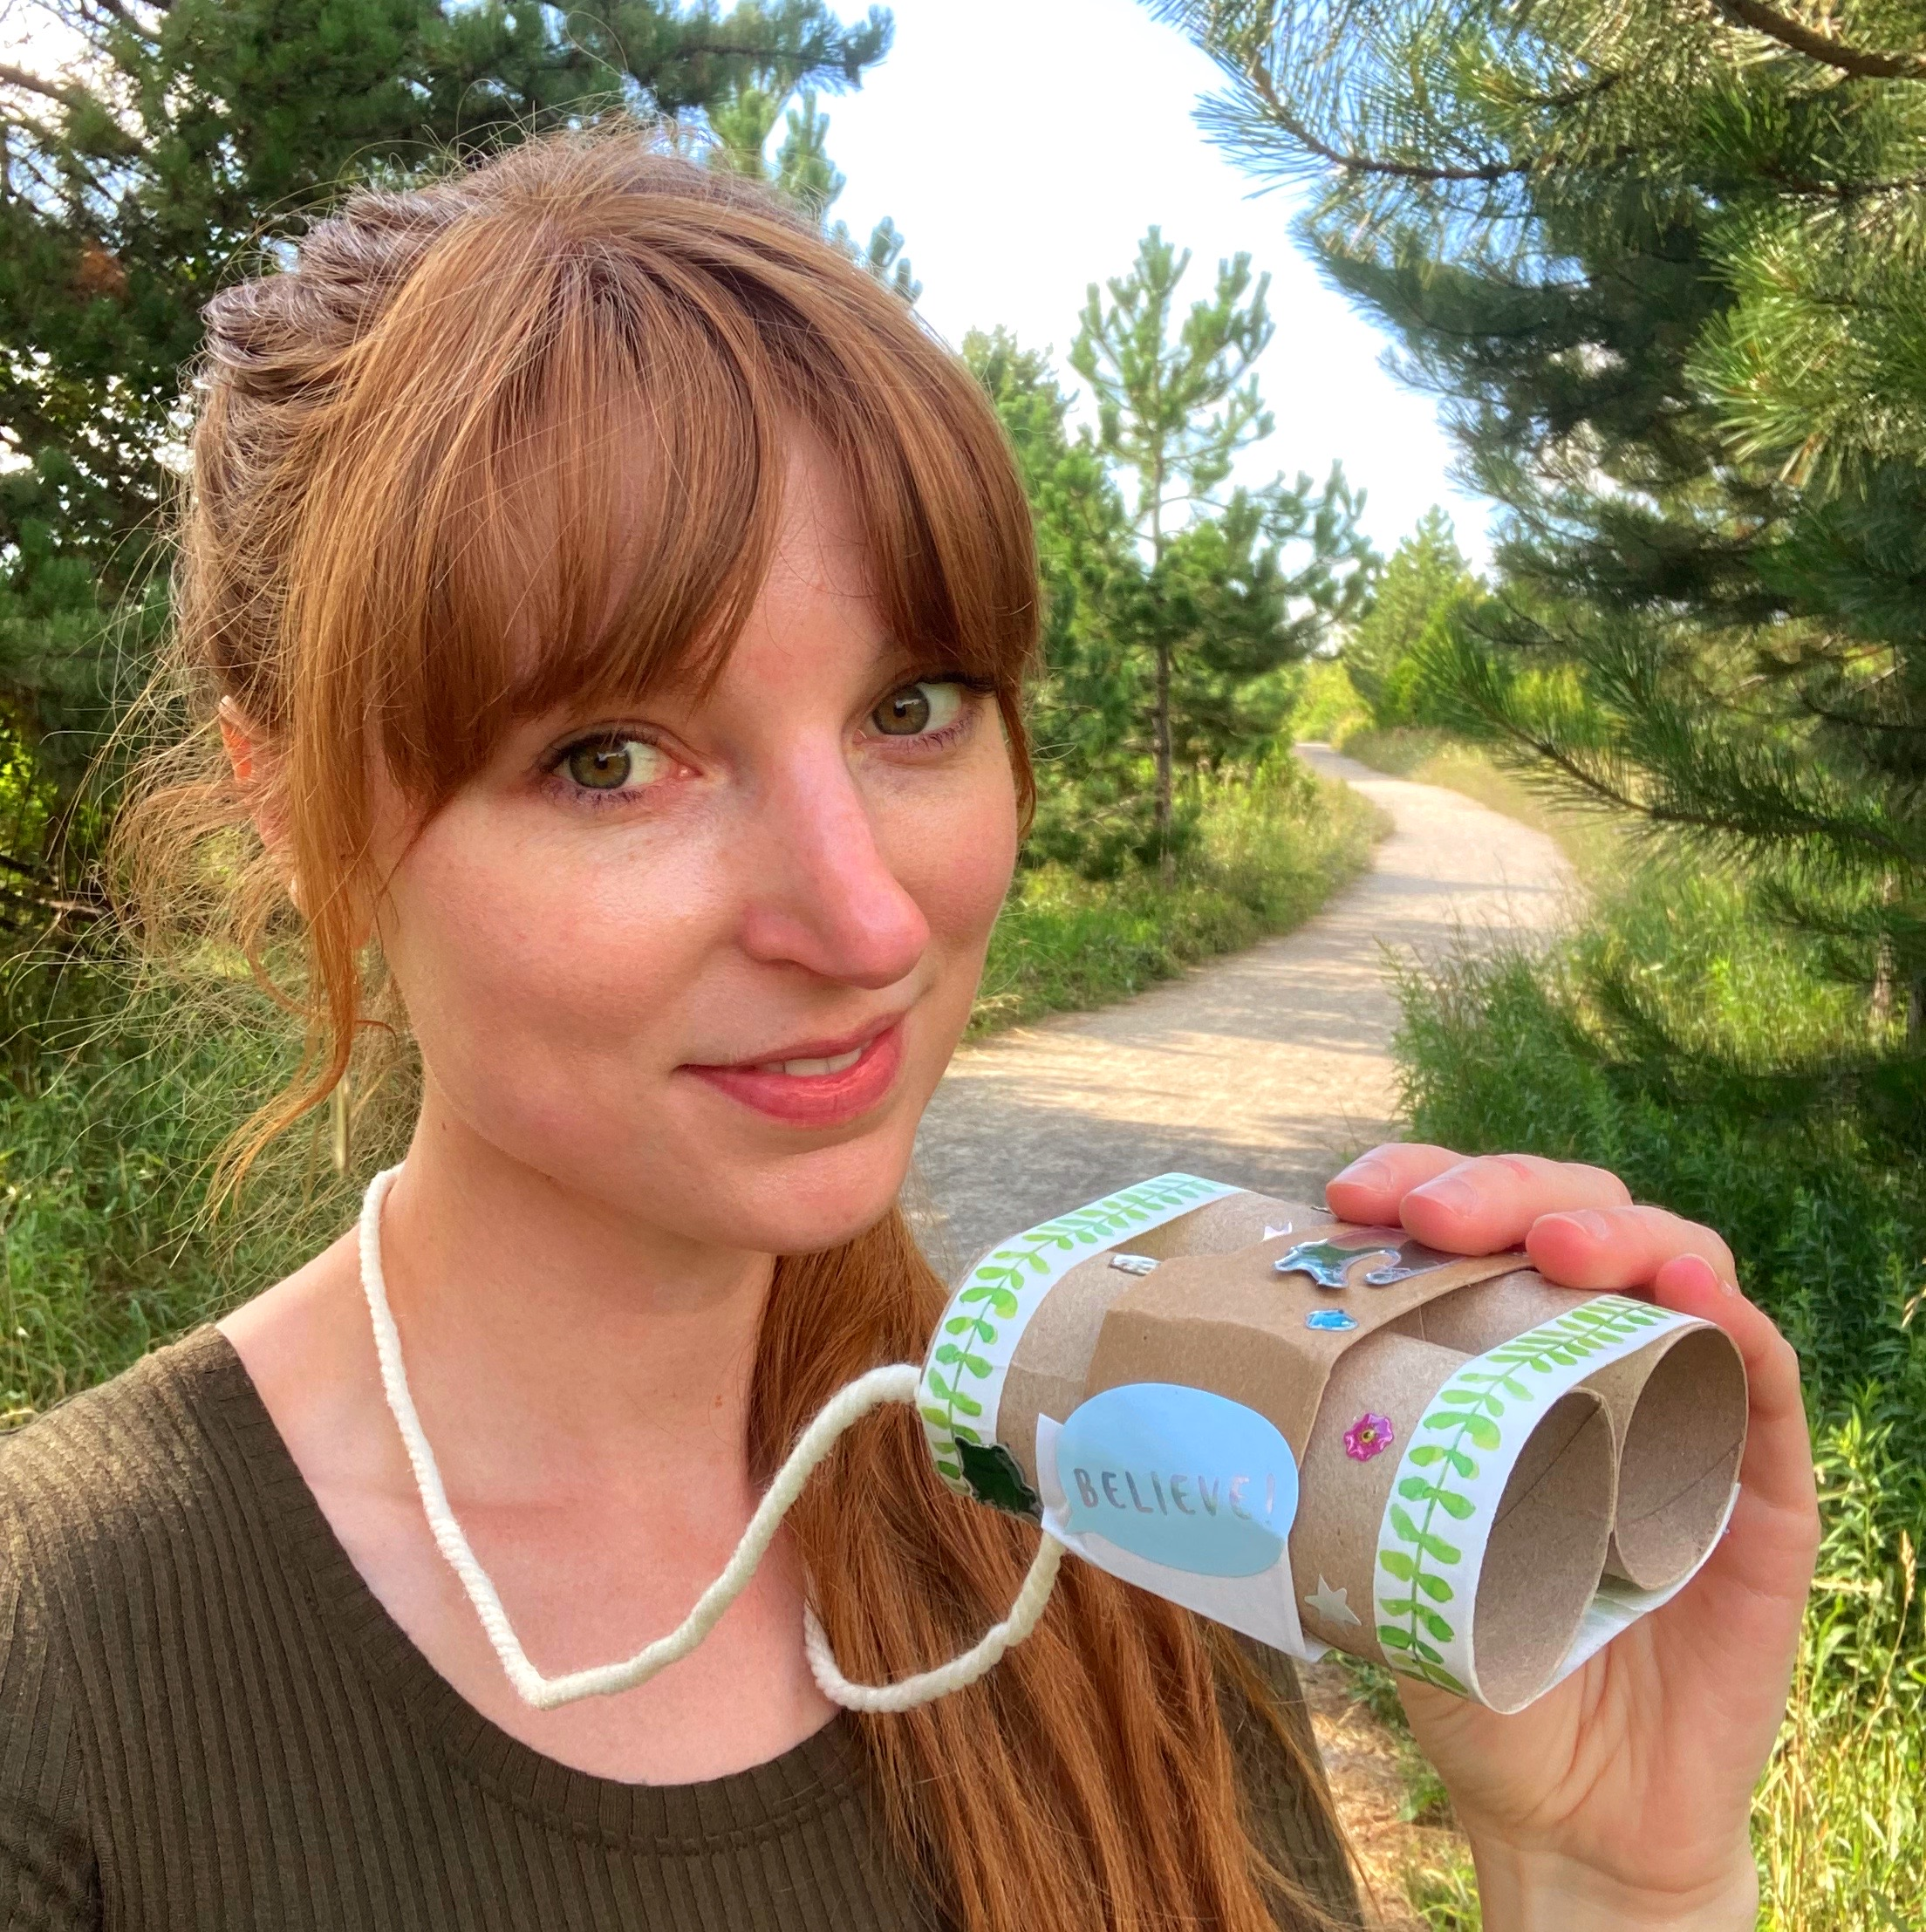 Photo of Rubi holding the toilet paper roll 'binoculars' she made and standing on a path in the forest